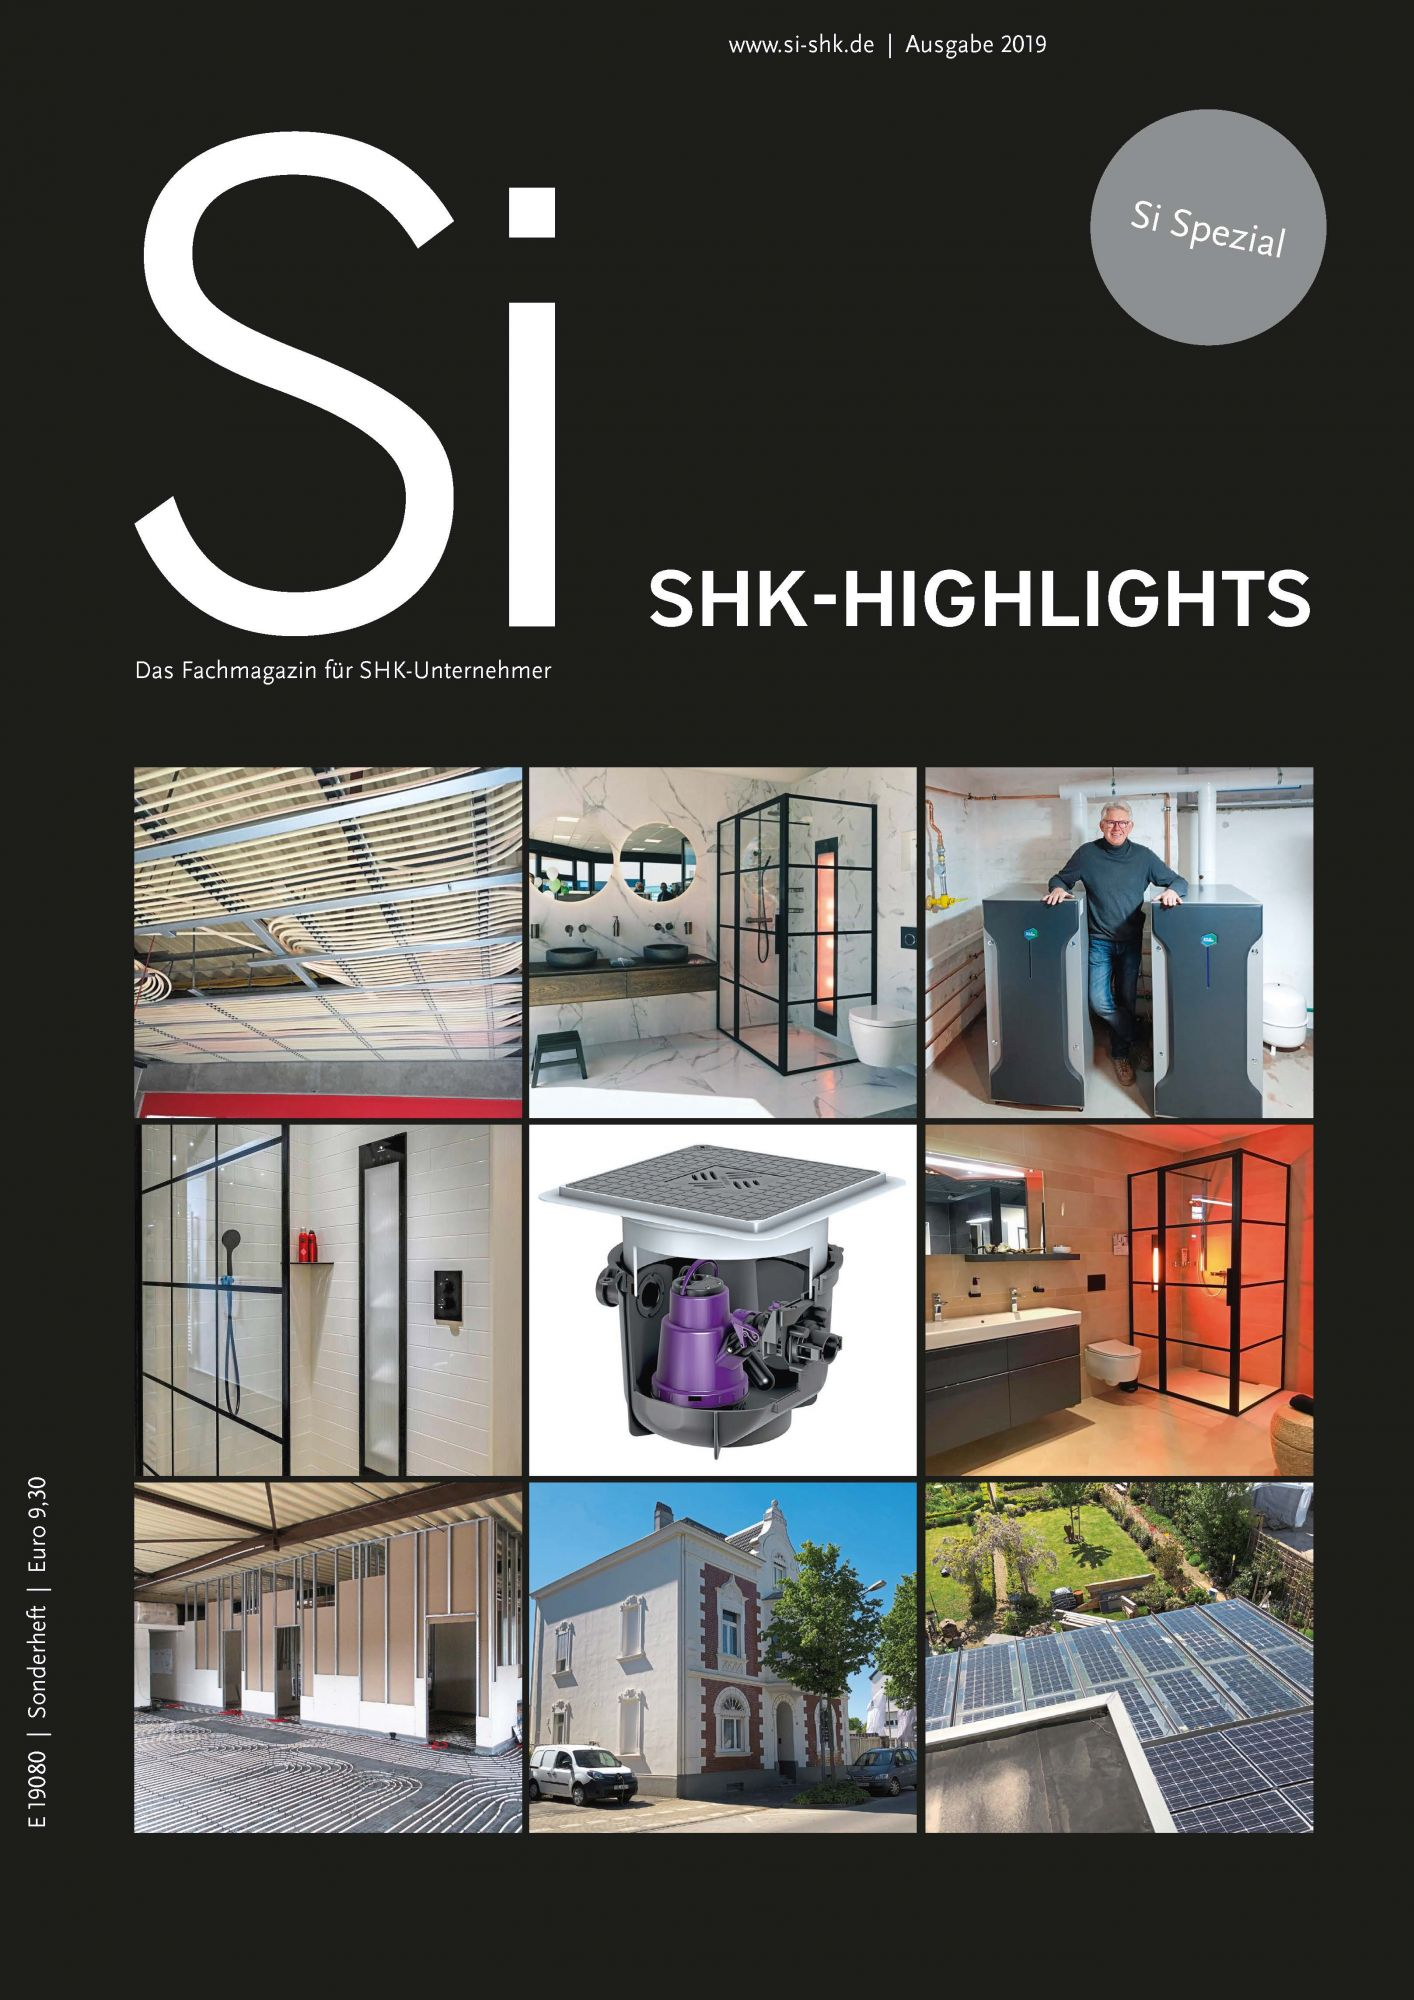 Titelseite_Si_SHK-HIGHLIGHTS